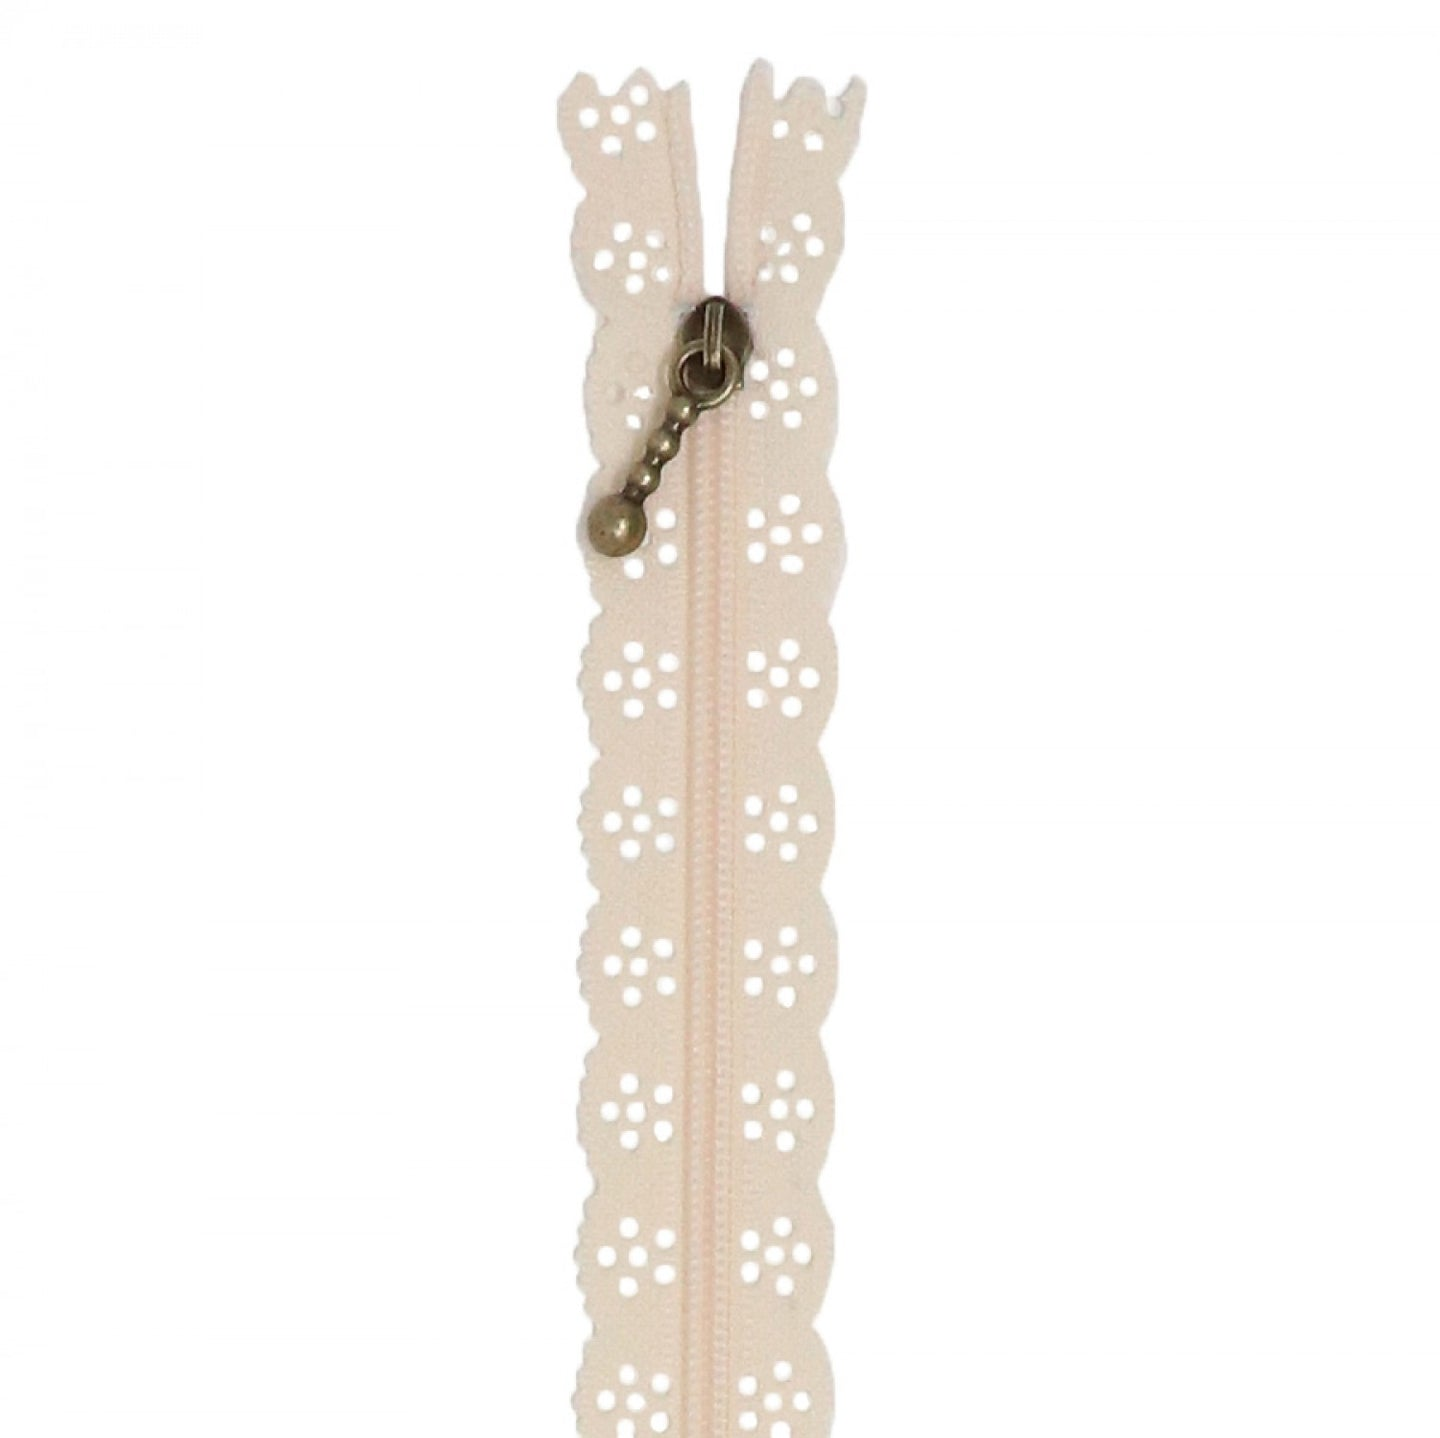 Lace Zipper - 14 Inch - Buttermilk